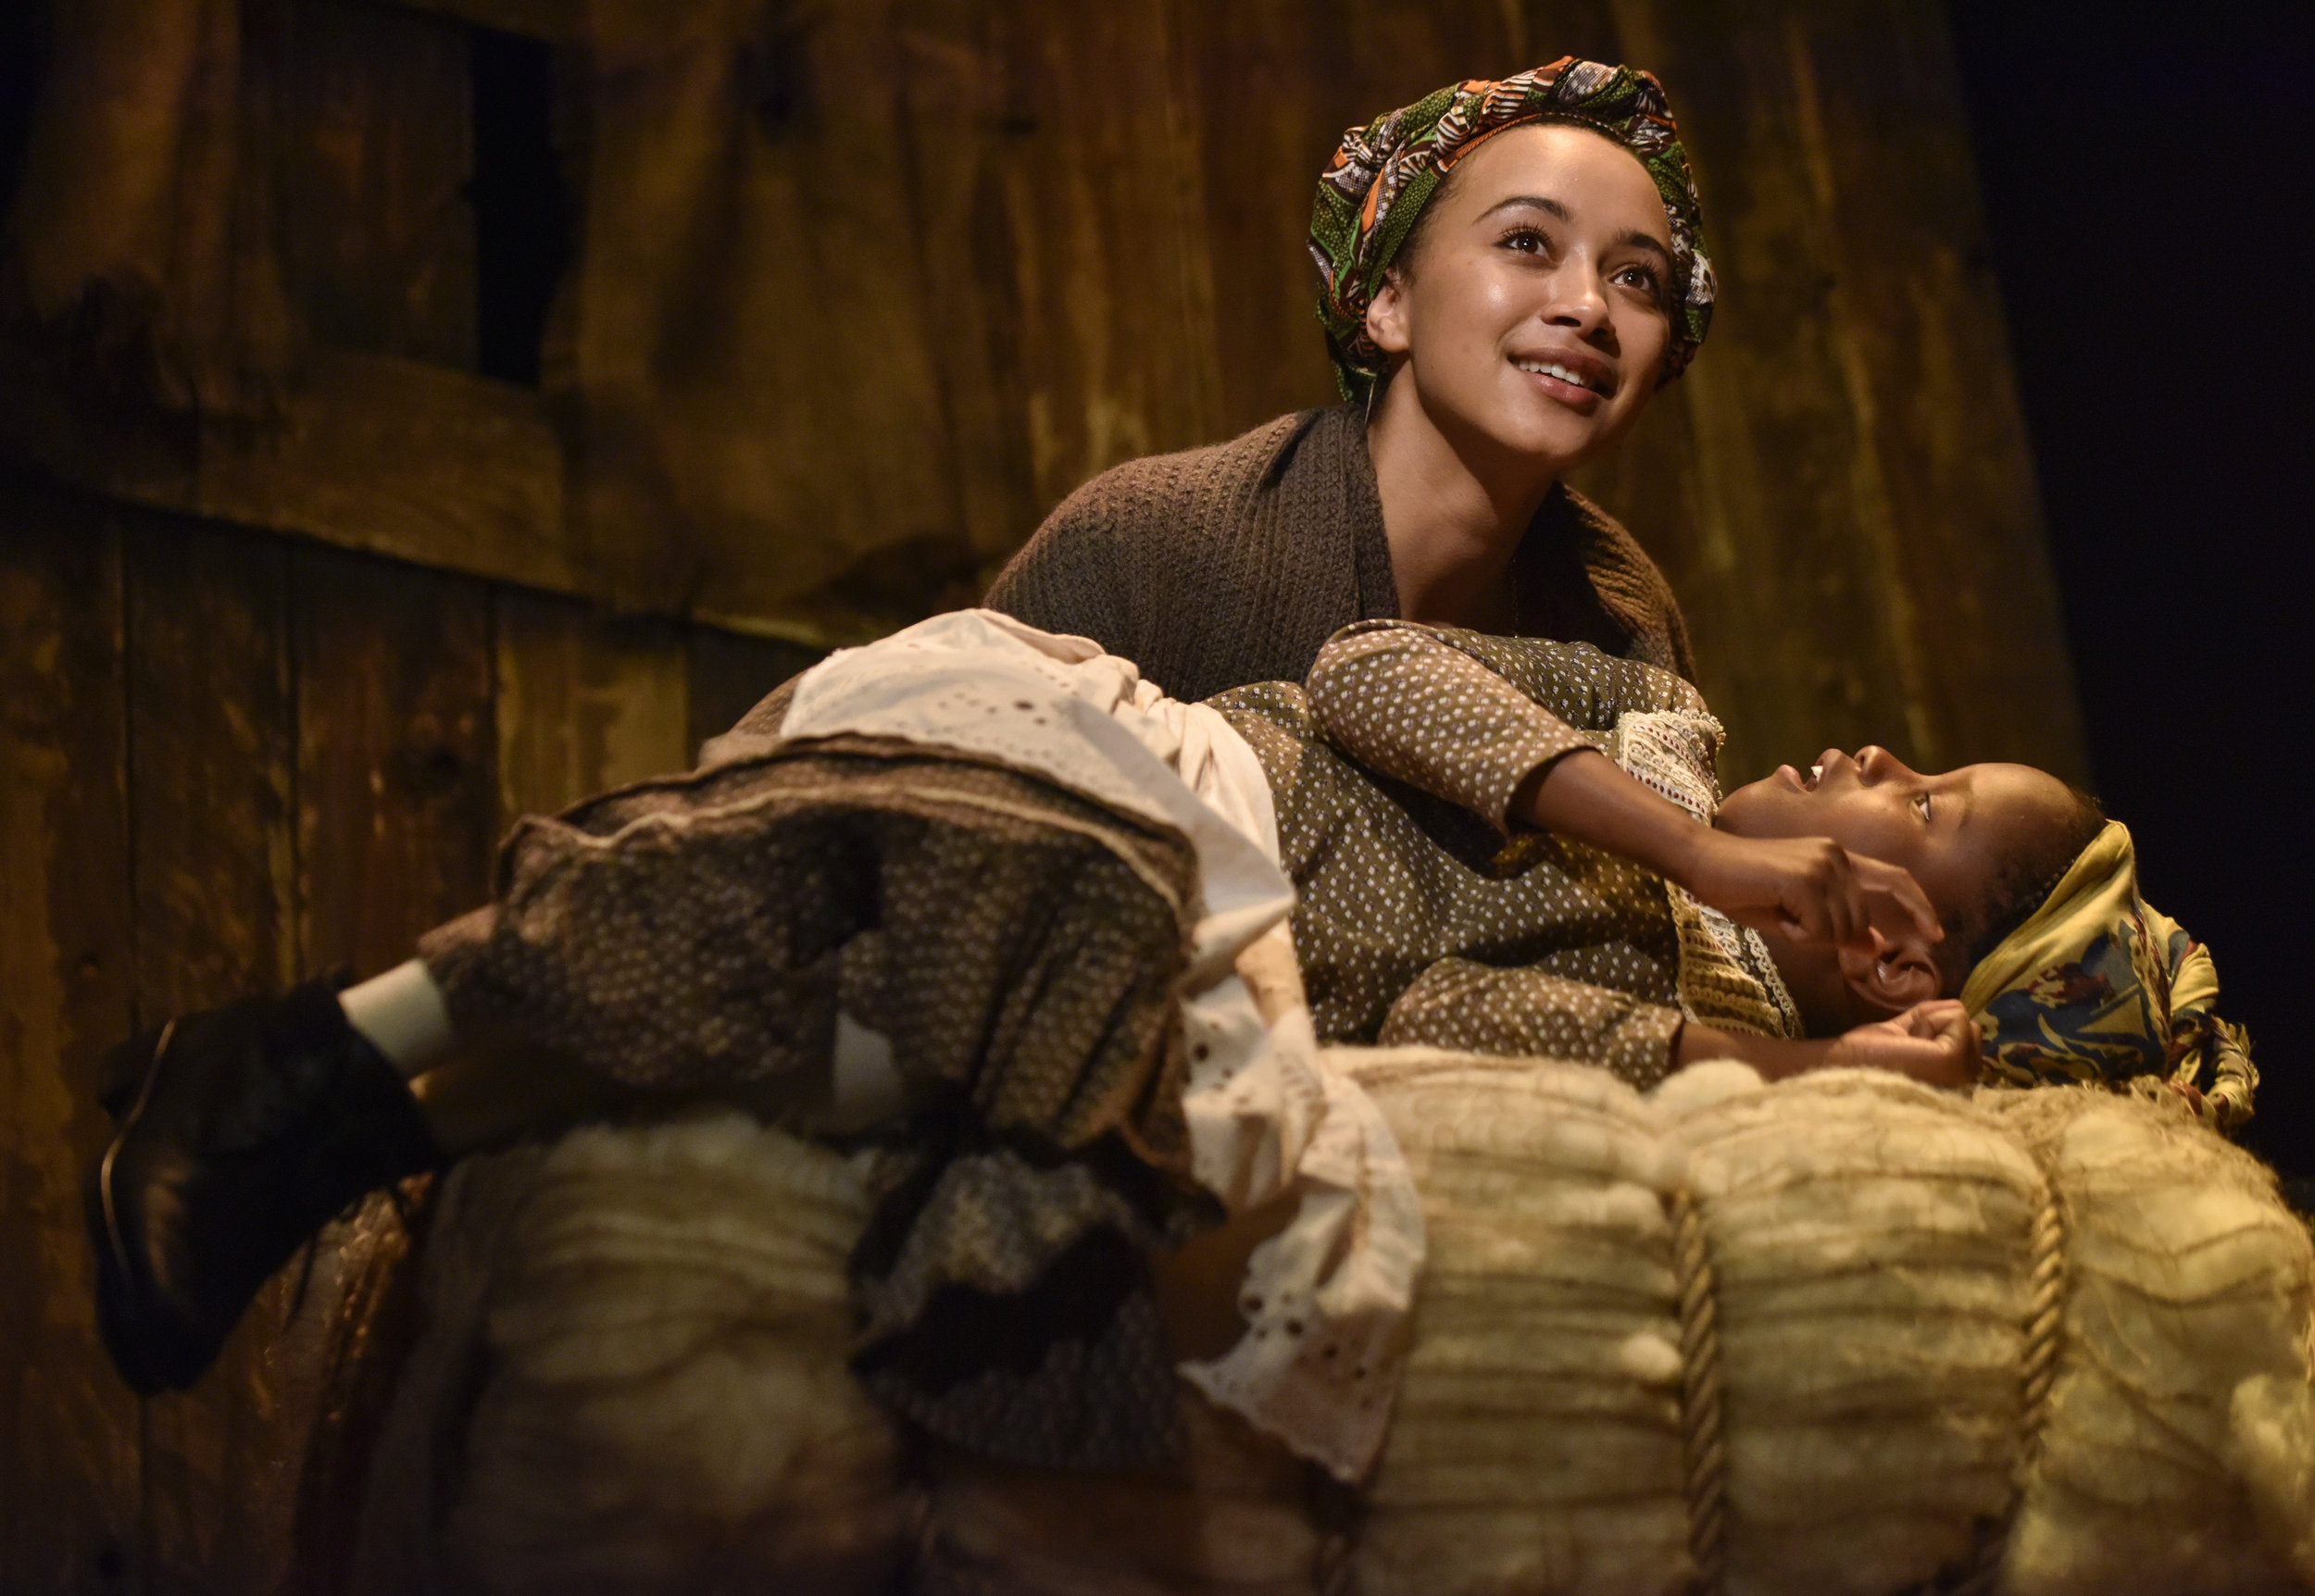 Lucy-Rose Atkins ( Emma Naomi ) and Ruby Atkins in '  BREAD & ROSES  ' (22 Jun - 7 Jul 2018) at  Oldham Coliseum Theatre     Photo by  Joel Chester Fildes , courtesy of Oldham Coliseum Theatre